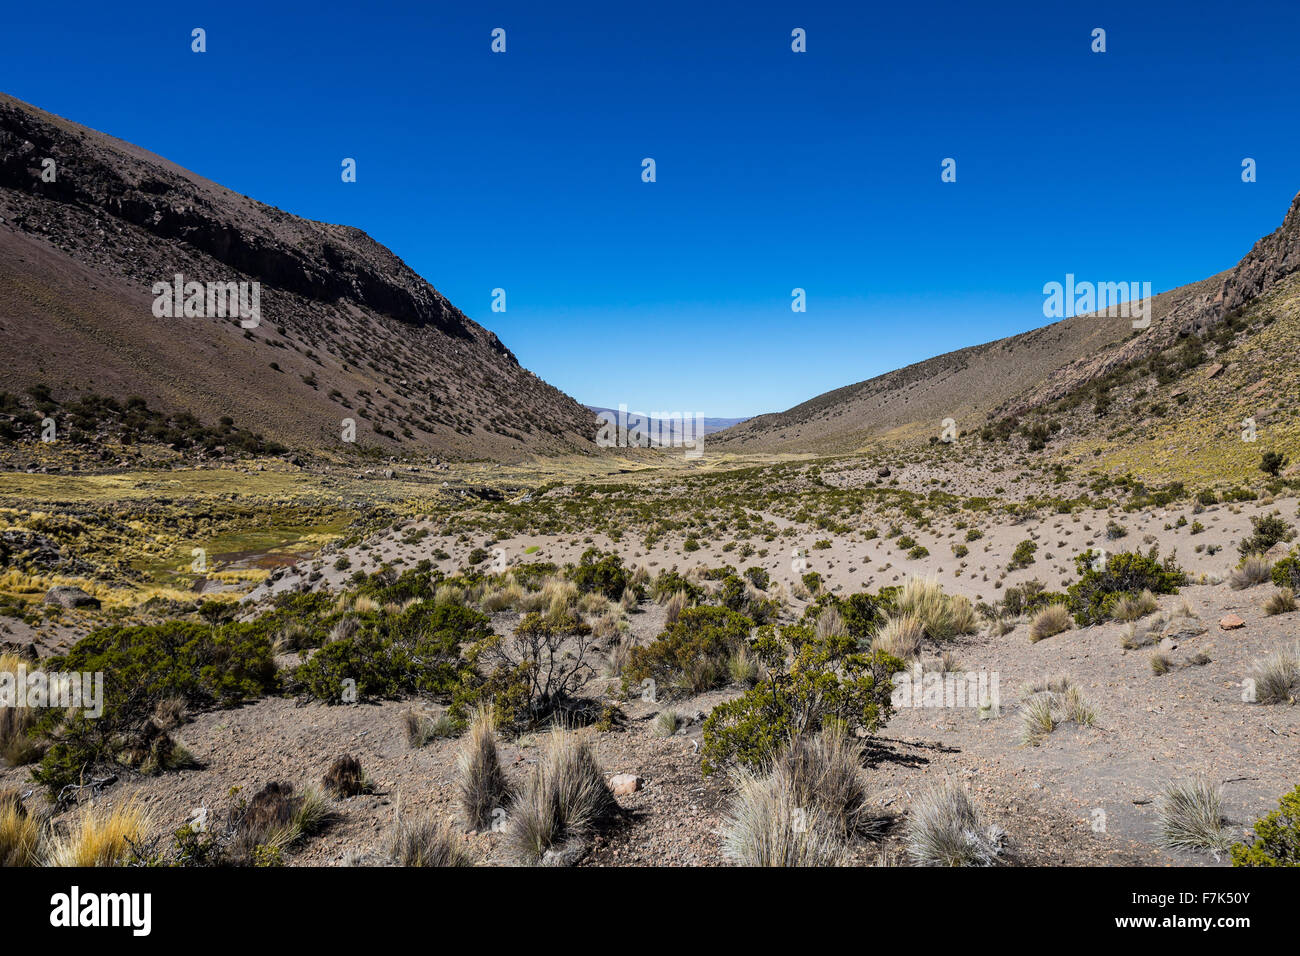 Landscape of an arid valley in the Andean highlands of Latin America - Stock Image